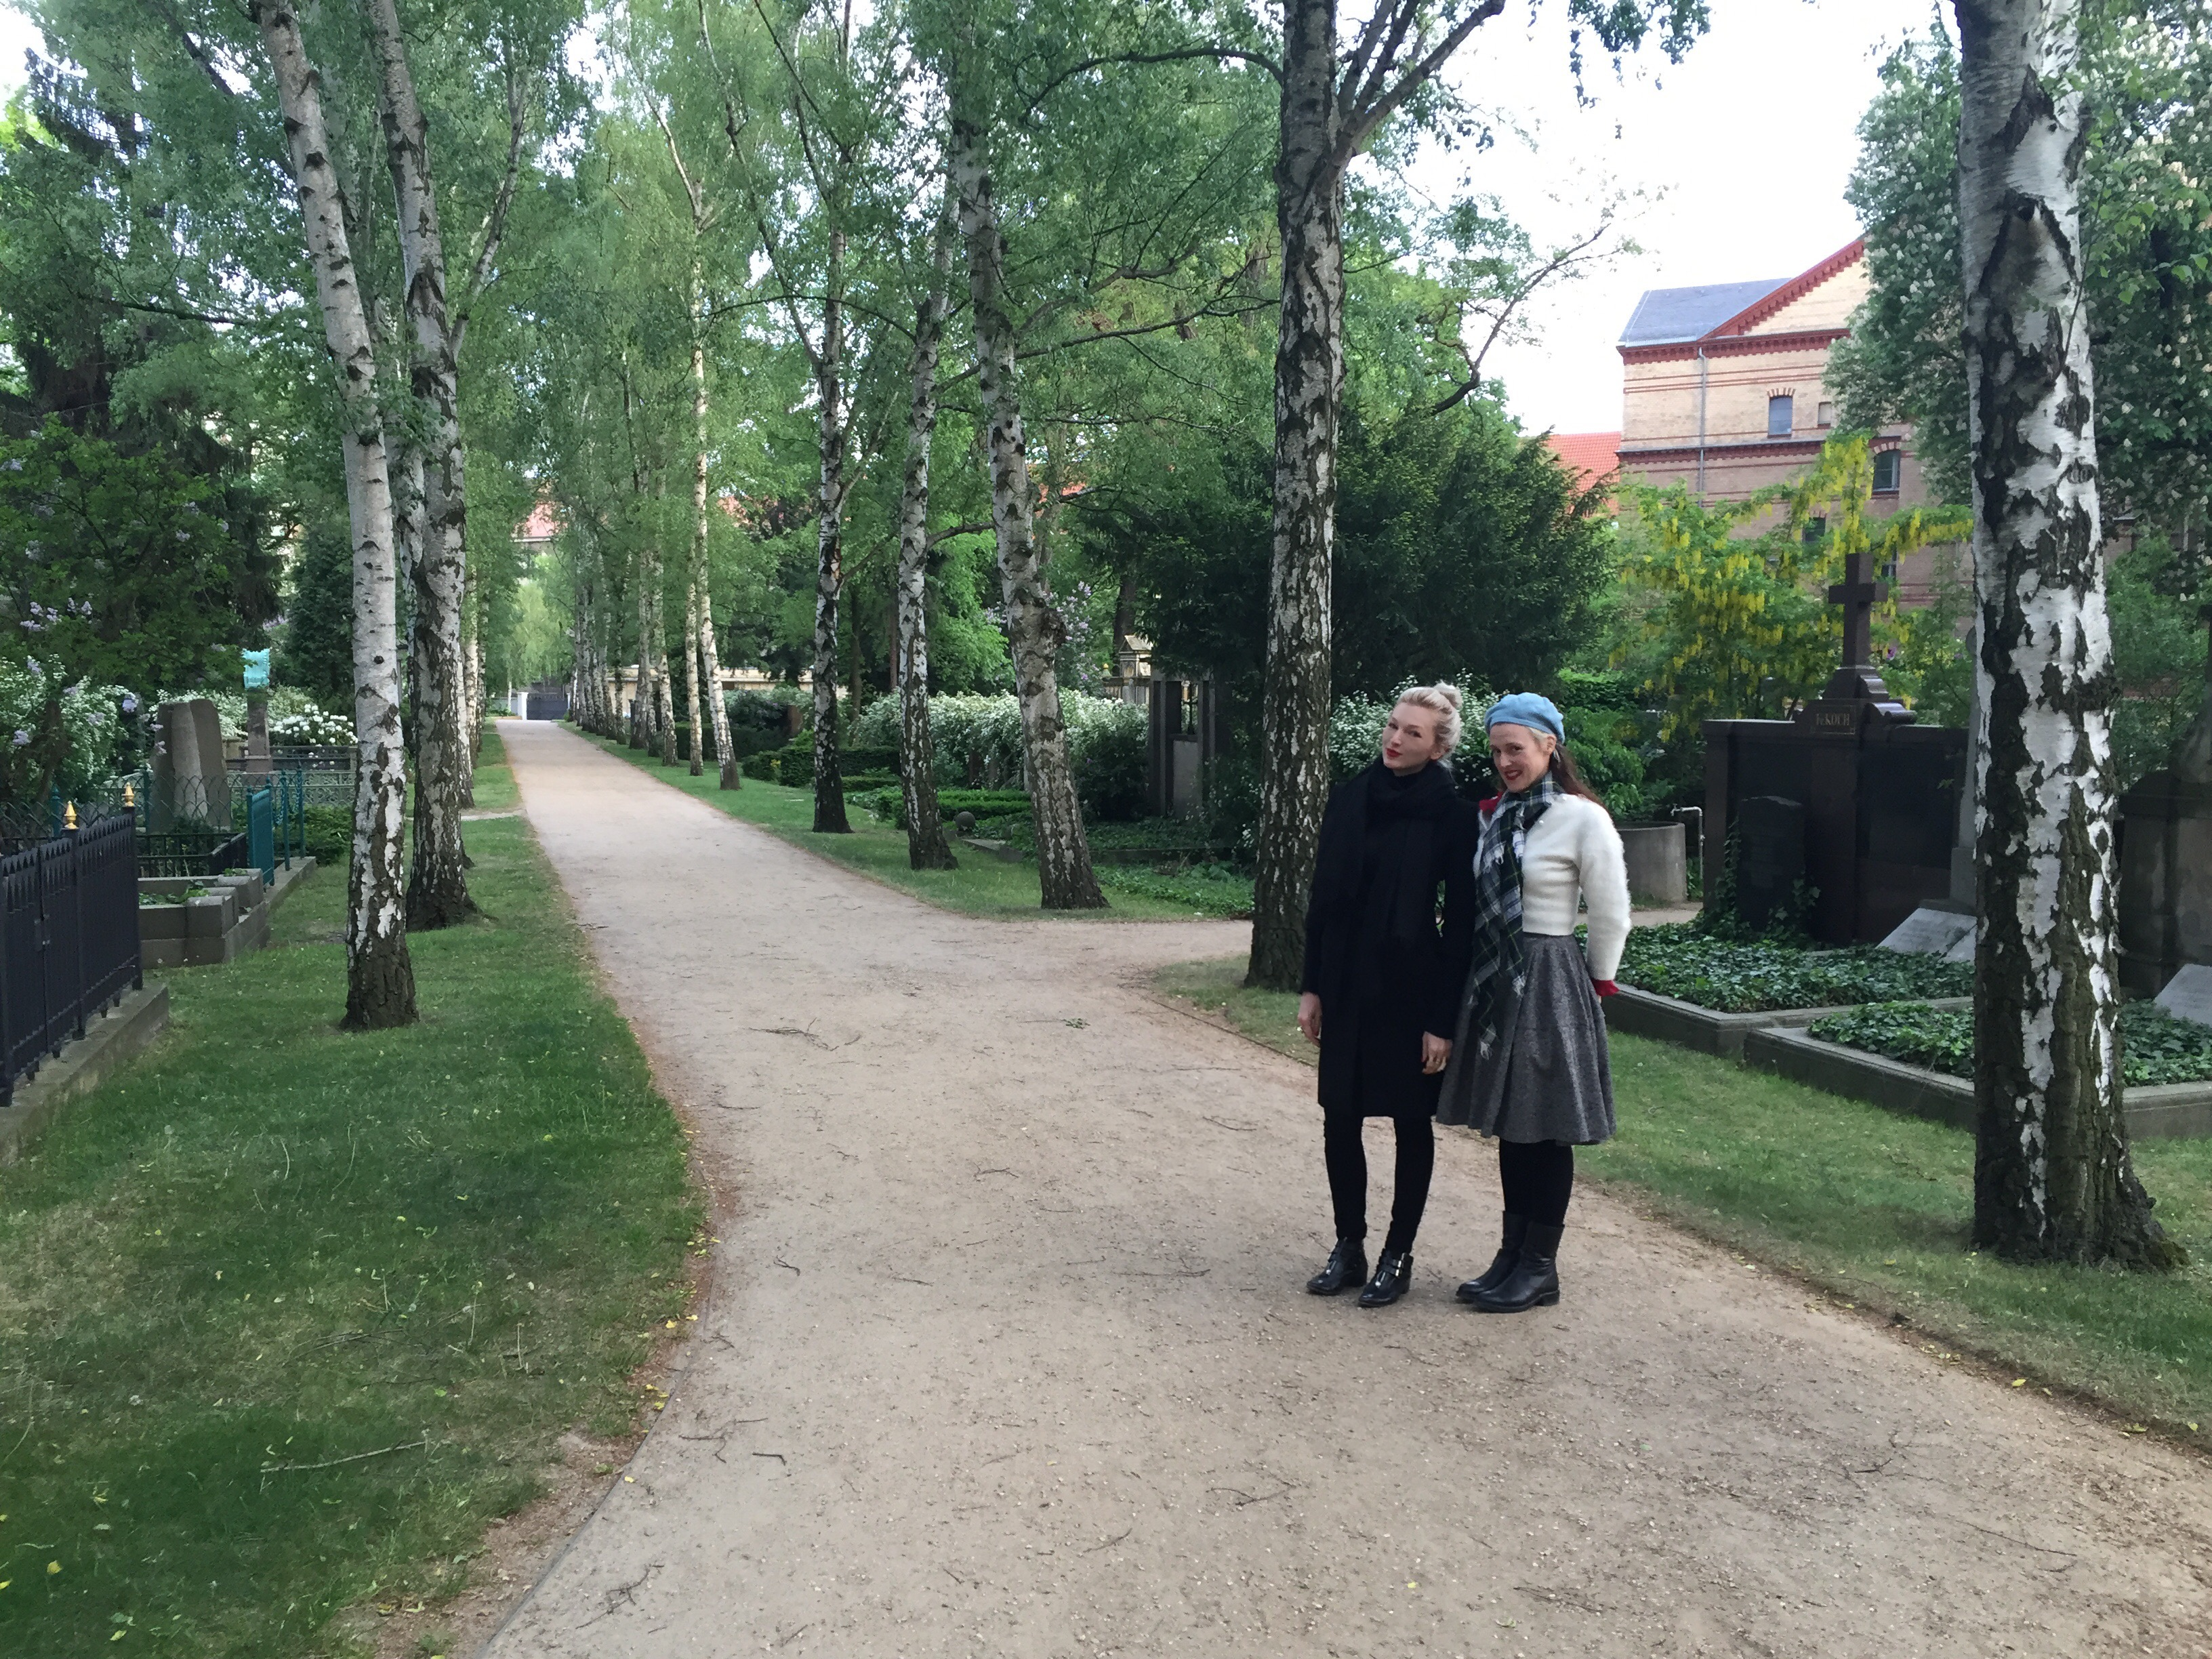 With artist Lyndal Walker in Dorotheenstadt cemetery, Mitte. Courtesy Diana d'Arenberg.